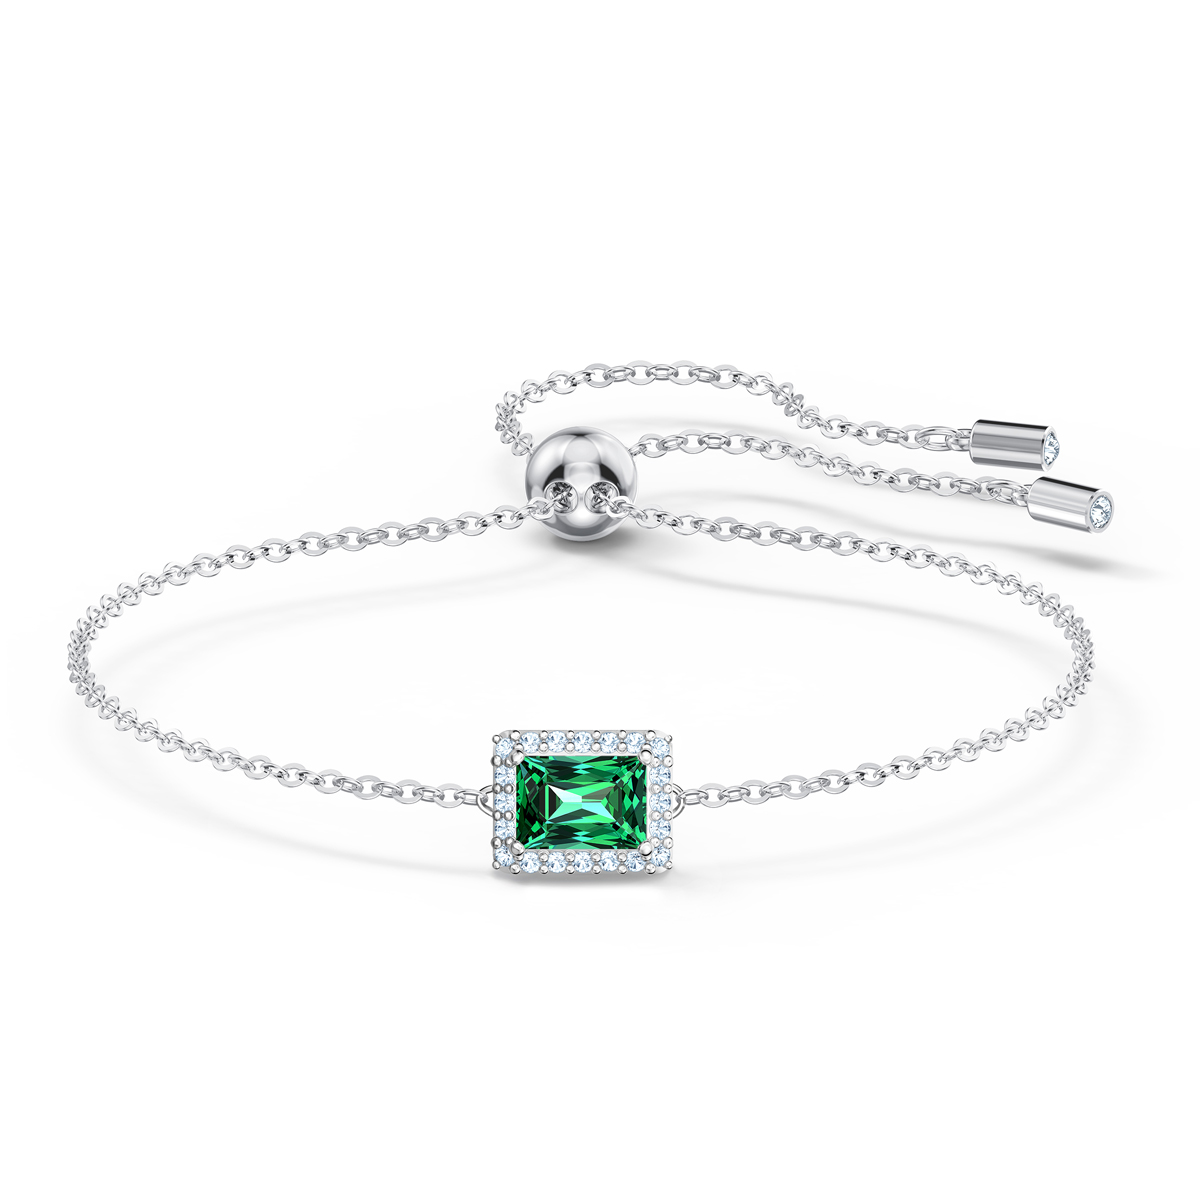 Swarovski Angelic Rectangular Bracelet, Green, Rhodium Plated